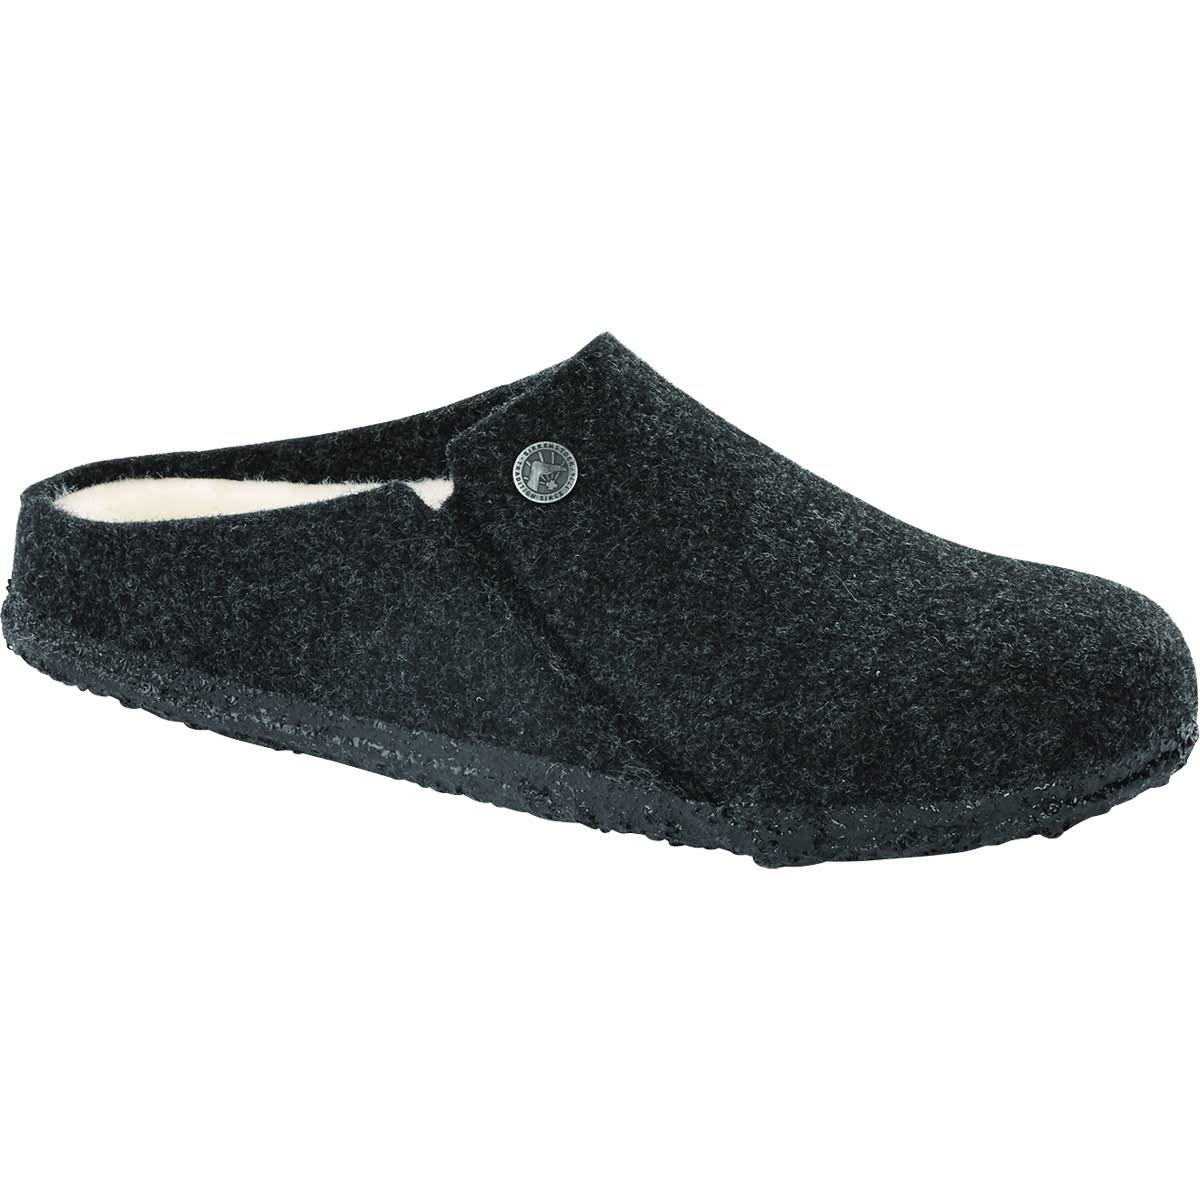 Birkenstock Zermatt Shearling (43 Anthracite/Natural)